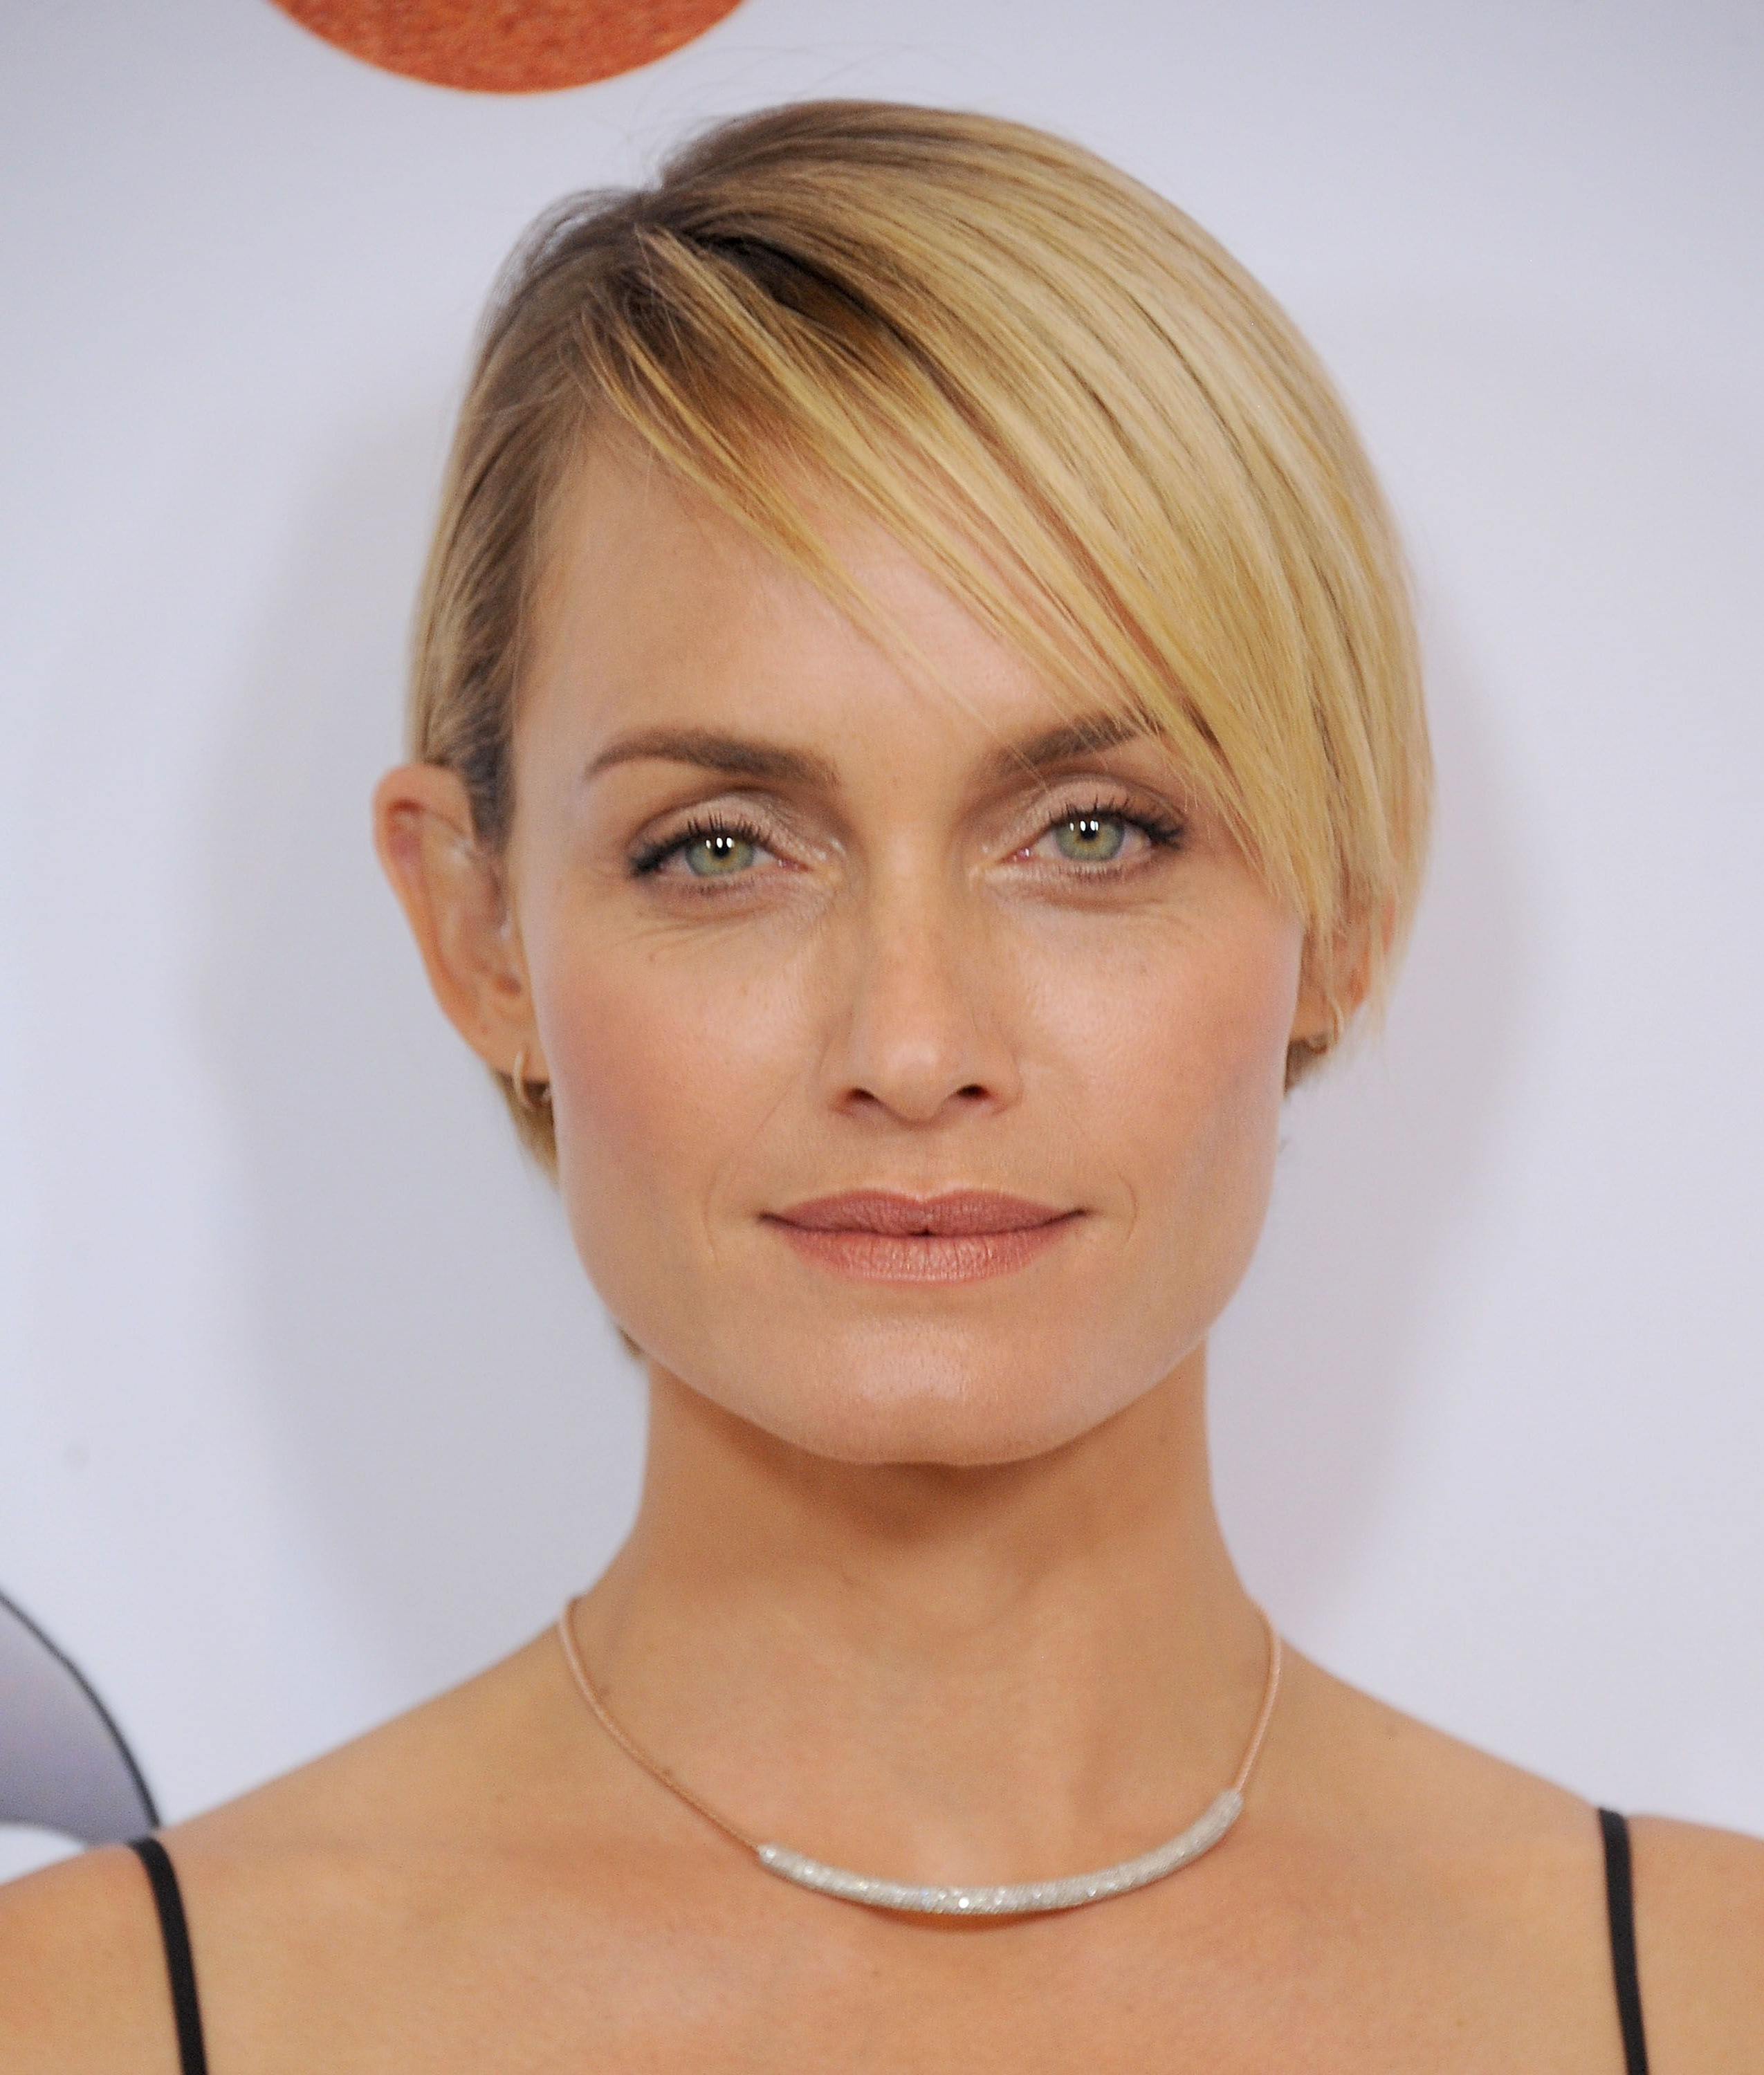 65 Best Short Hairstyles, Haircuts, And Short Hair Ideas For 2018 Within Women Short To Medium Hairstyles (Gallery 9 of 25)